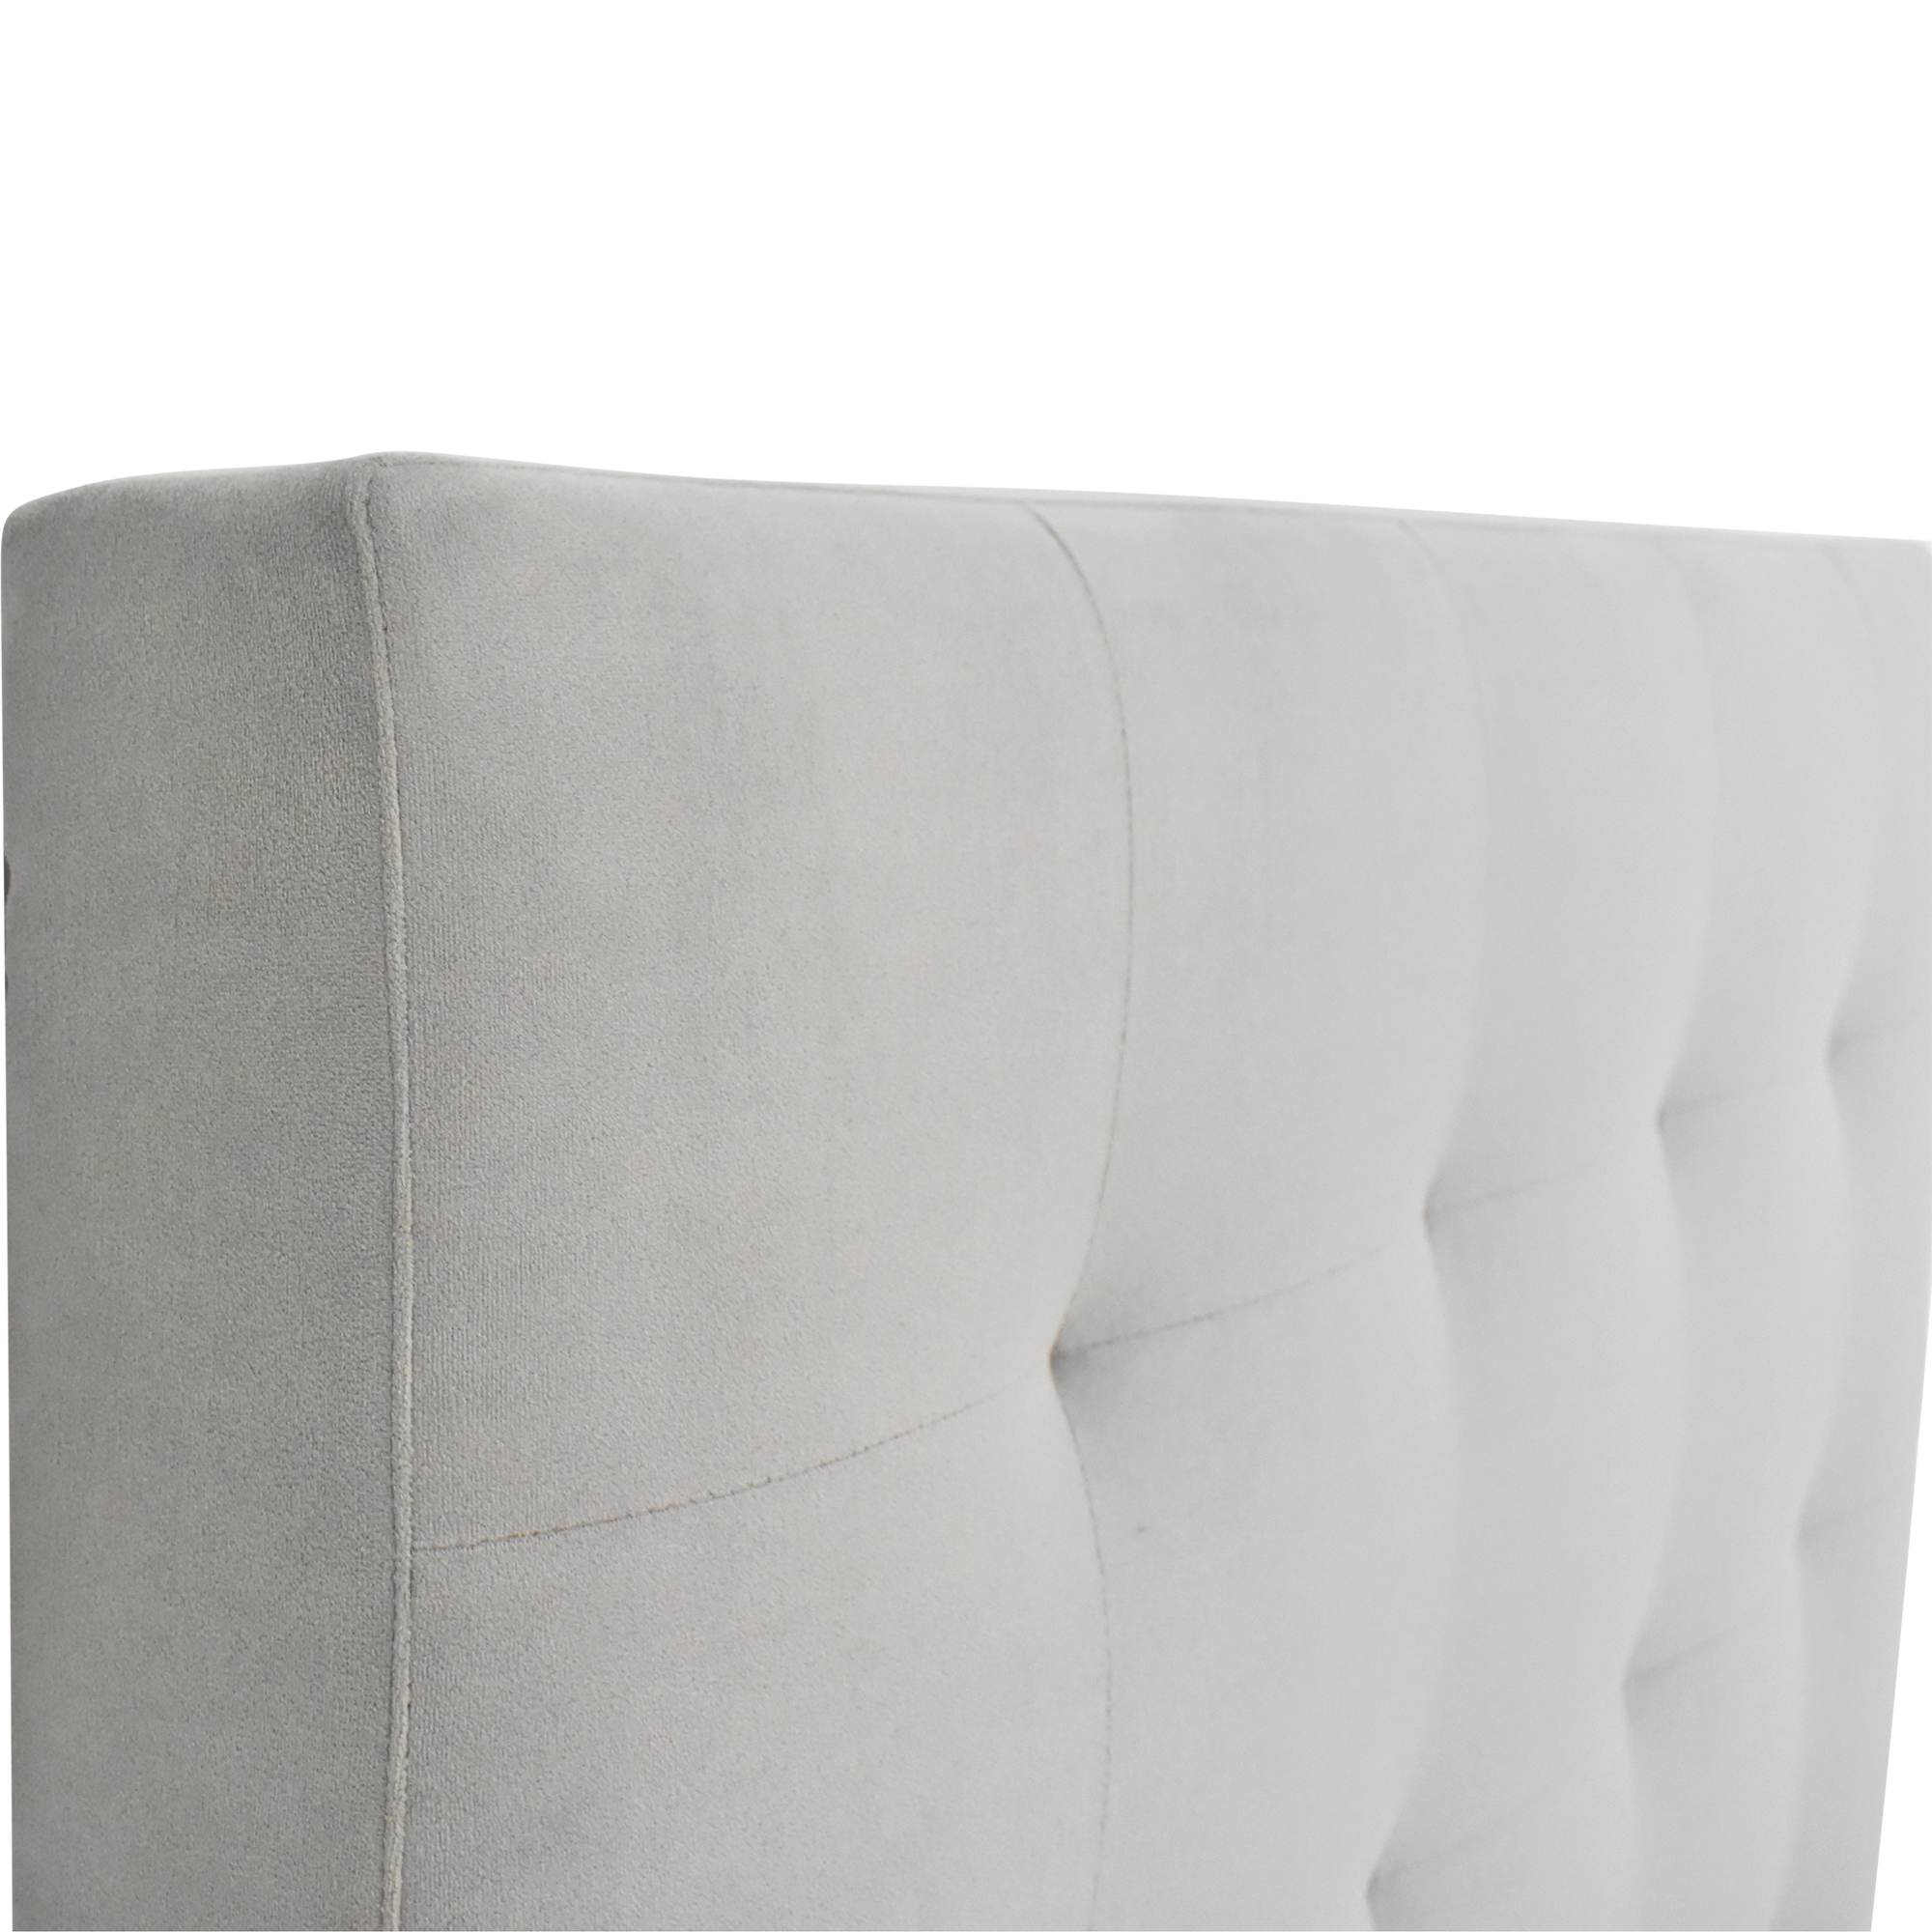 West Elm West Elm Tall Grid Tufted Twin Headboard used